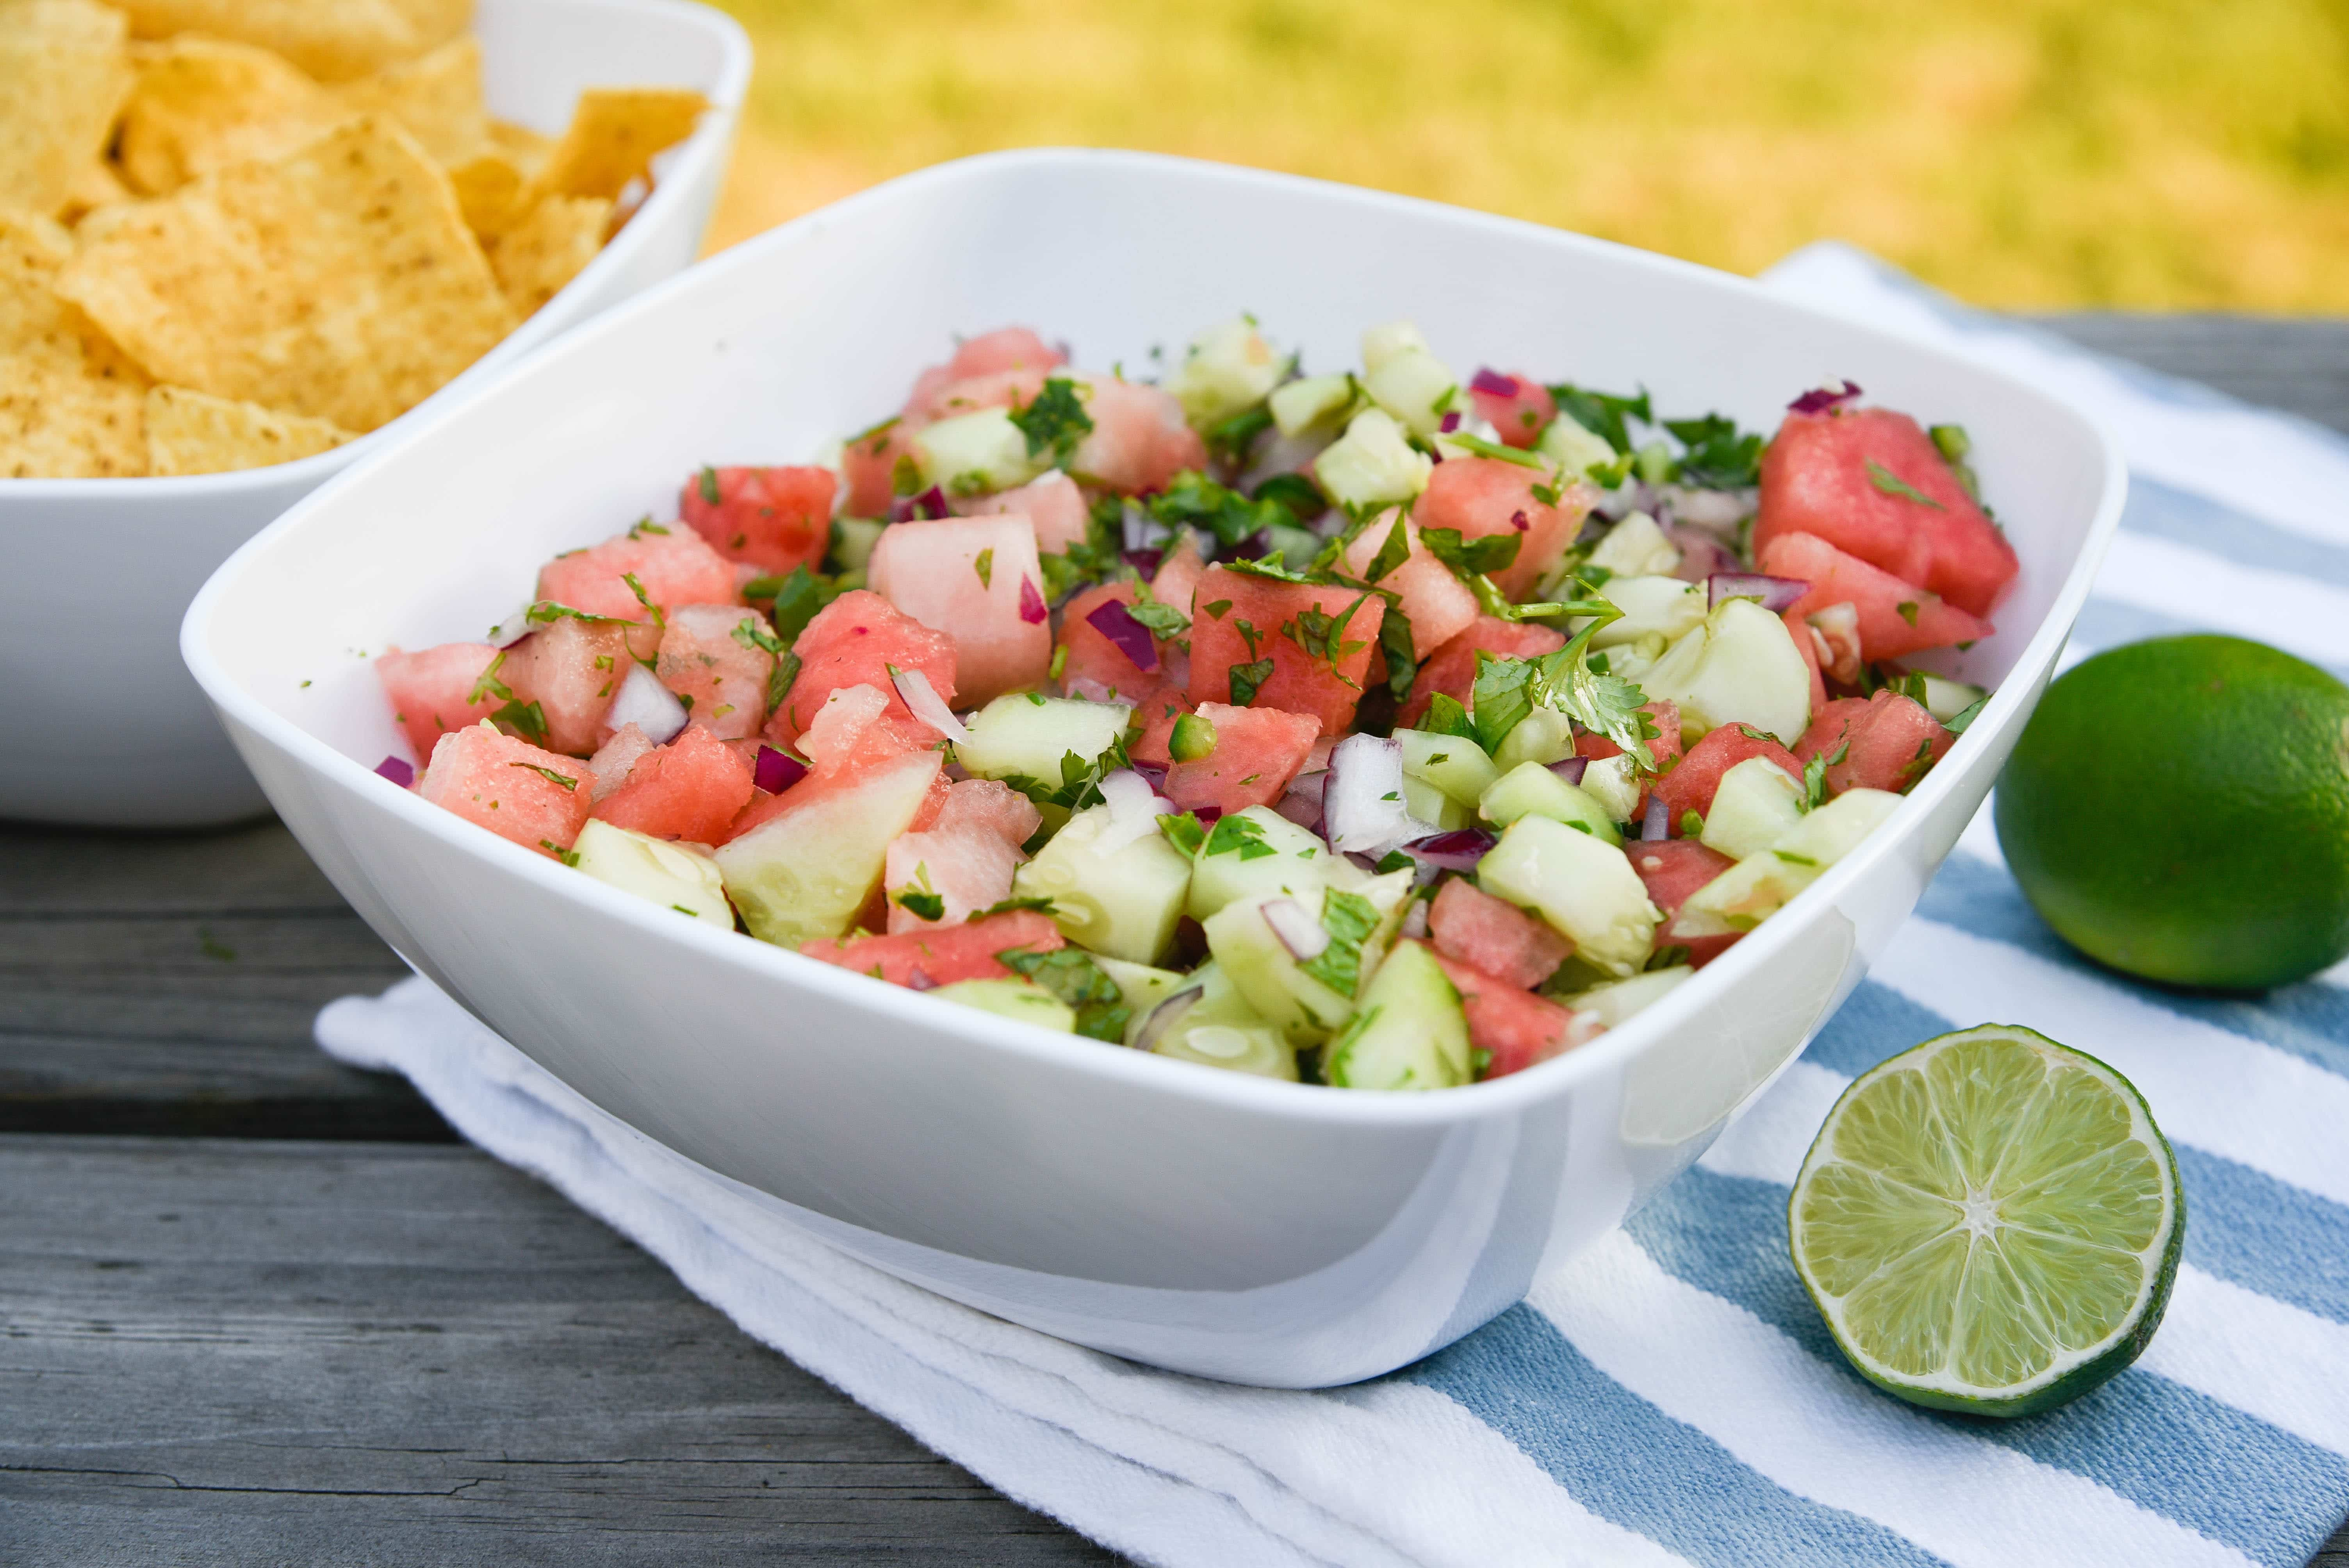 Bowl of watermelon salsa with chips in background.